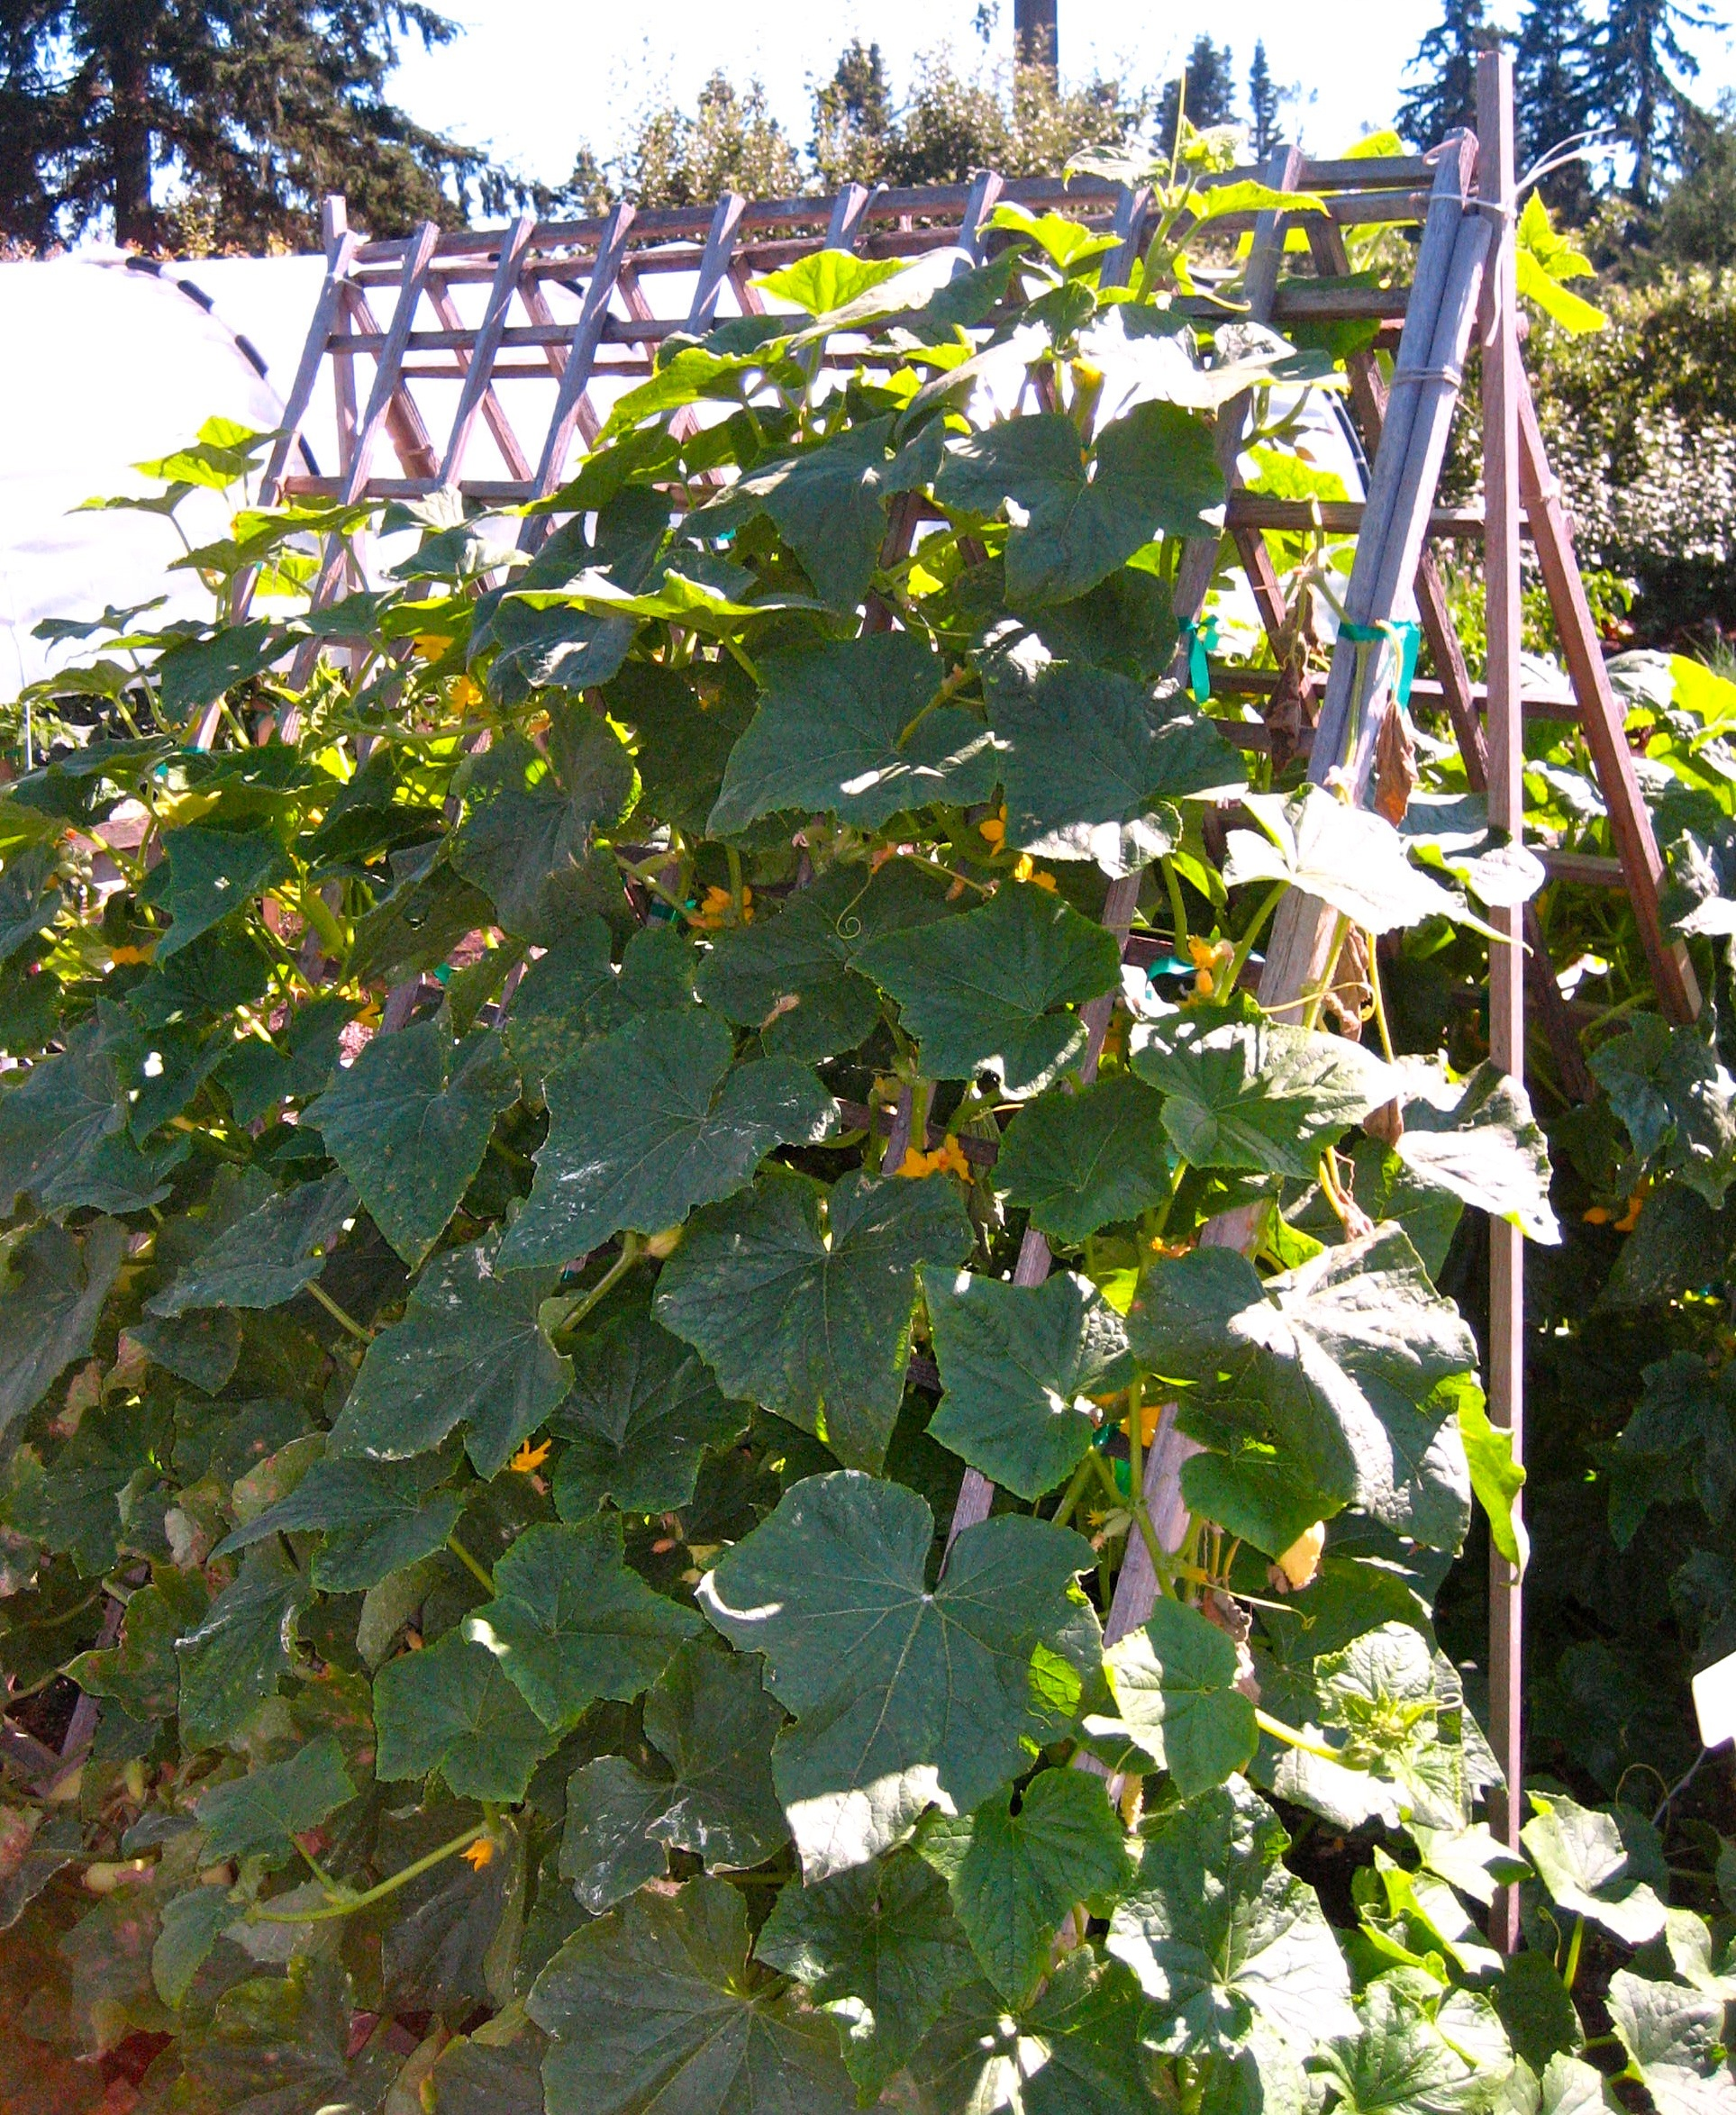 cucumber vine on a frame trellis for support